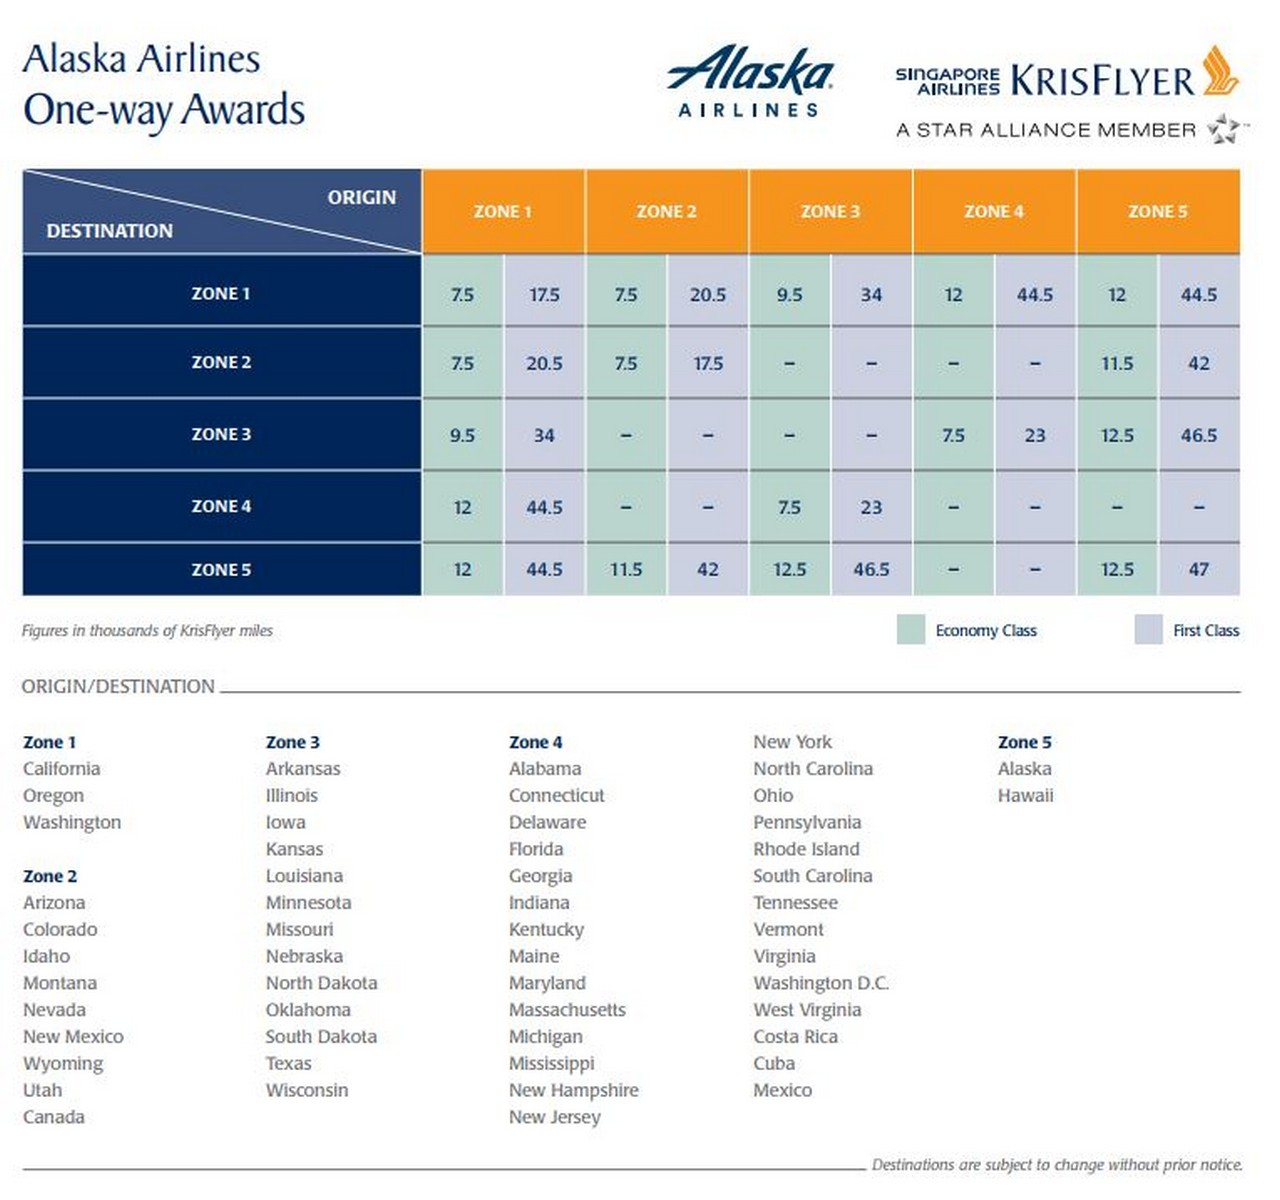 Singapore Airlines Releases Alaska Airlines Award Chart